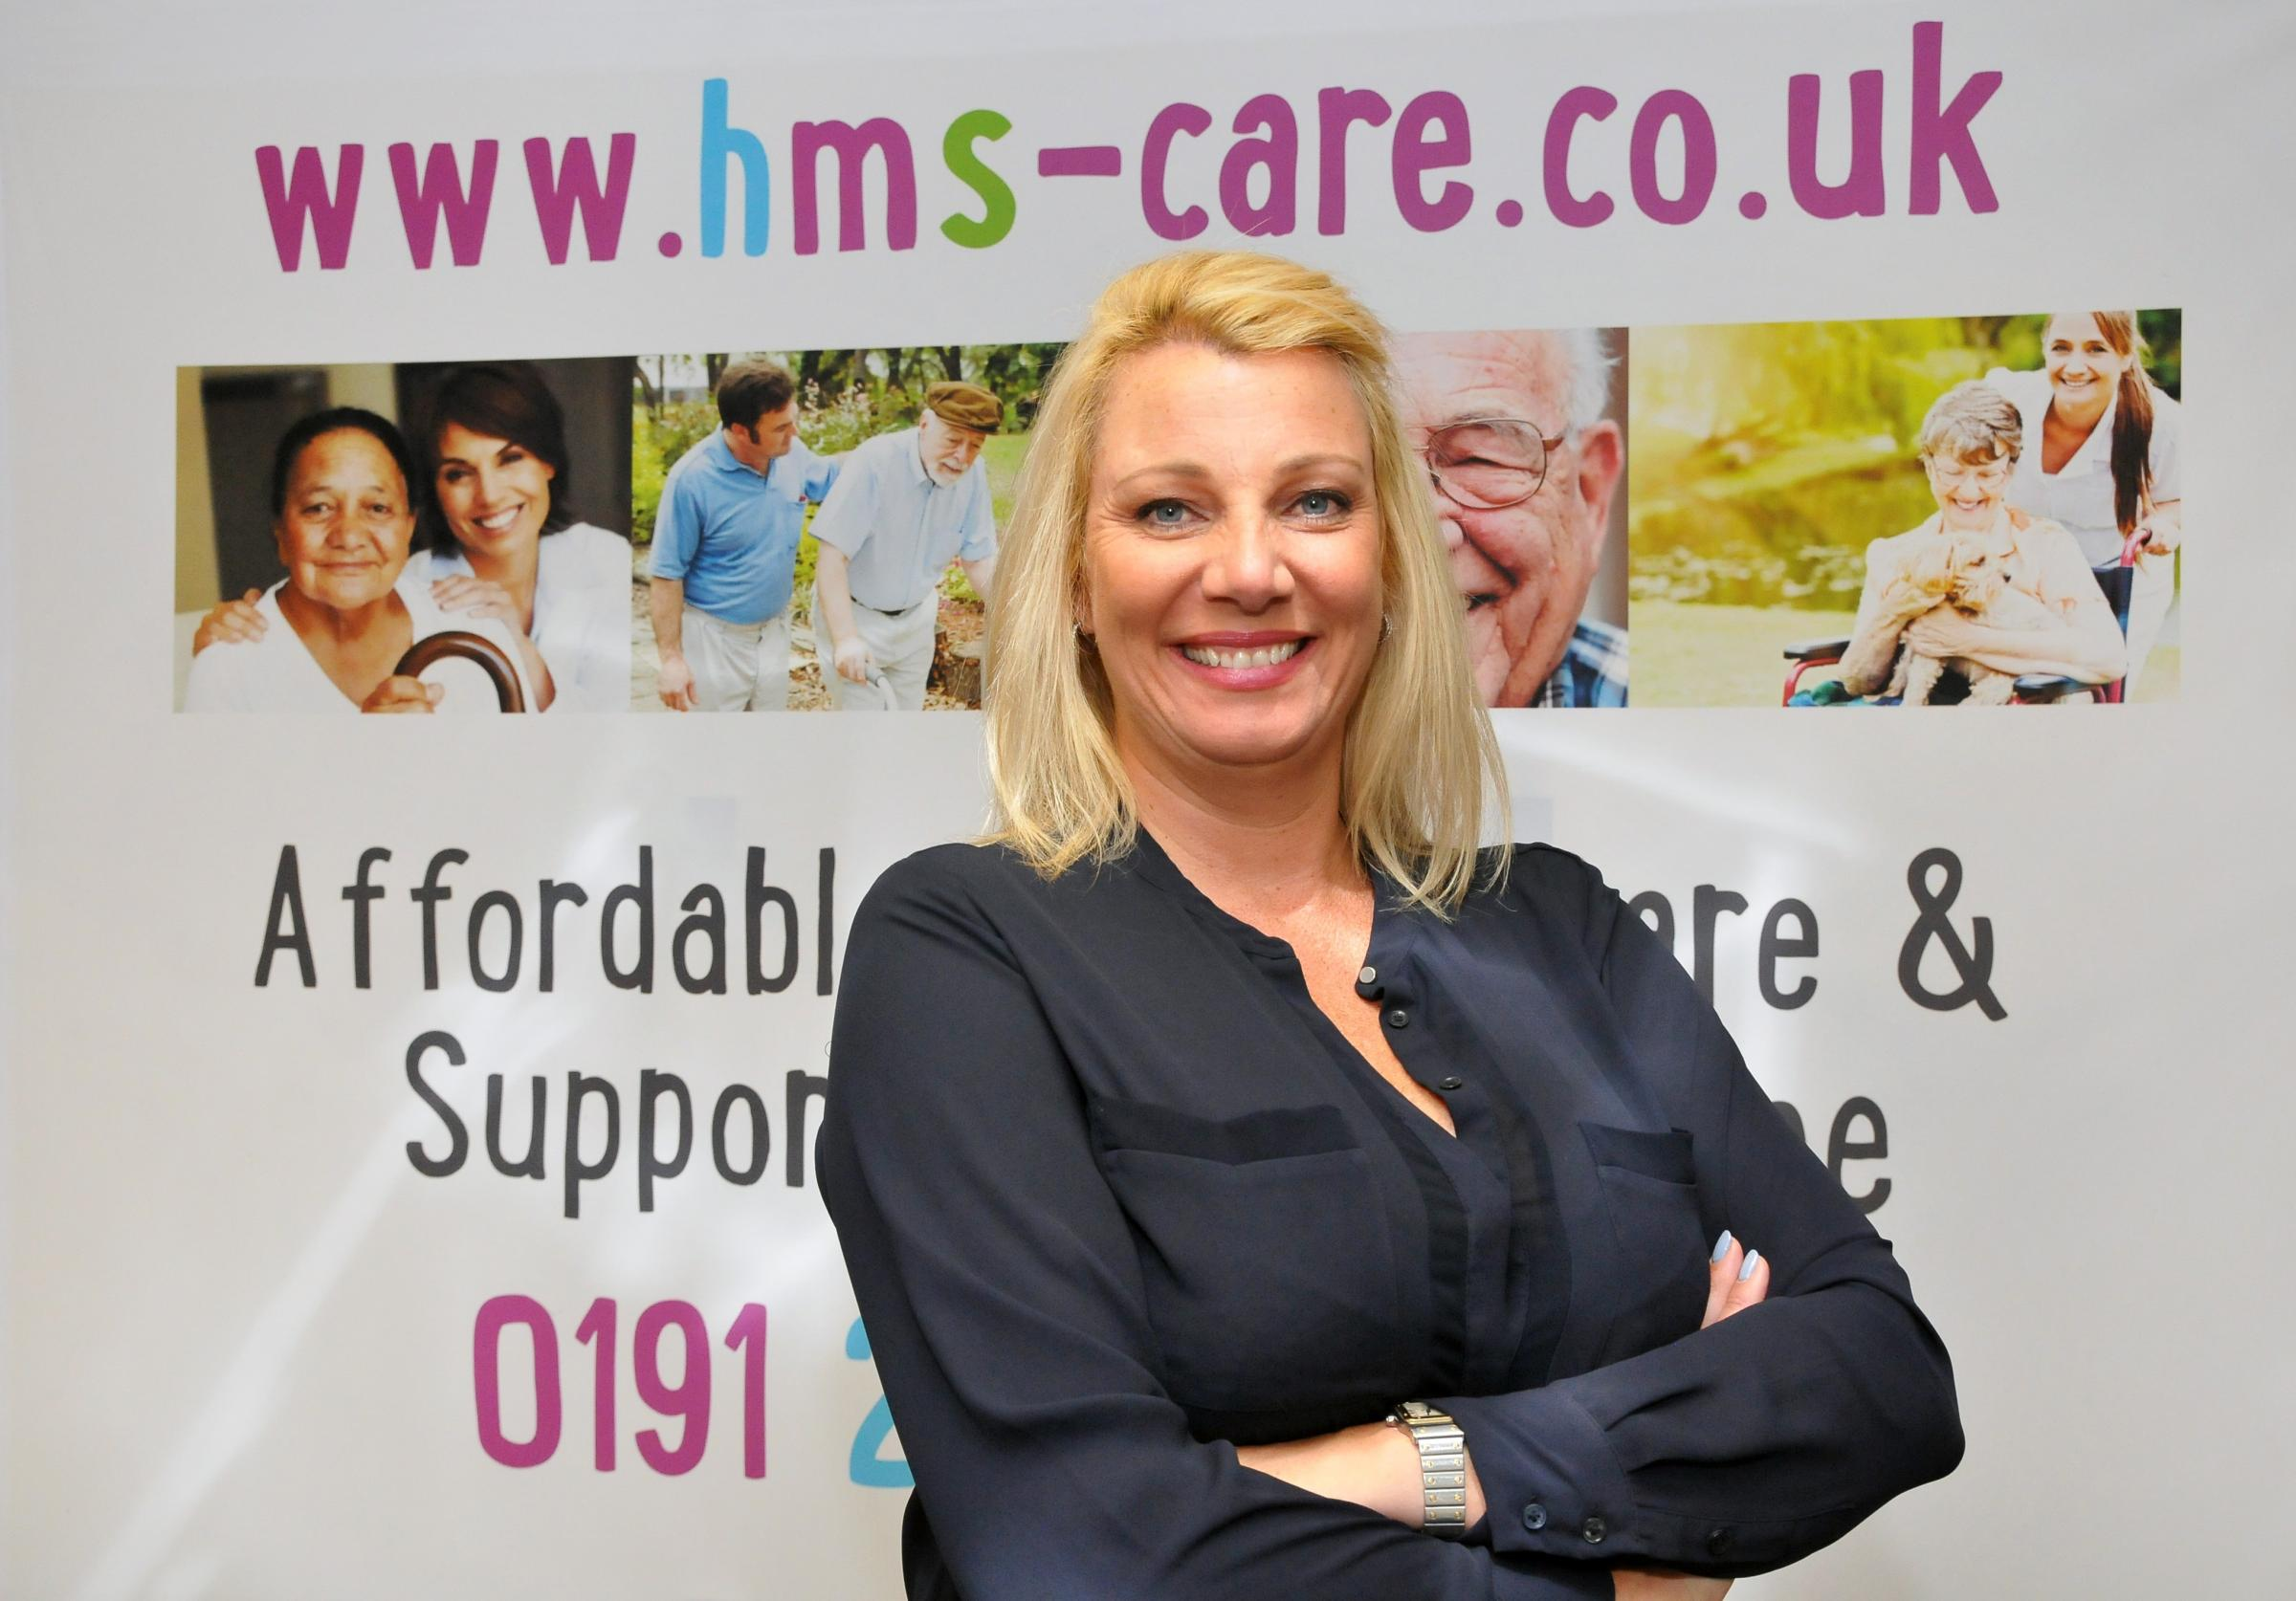 ENDEAVOUR: Sam Hackett, founder of HMS Care